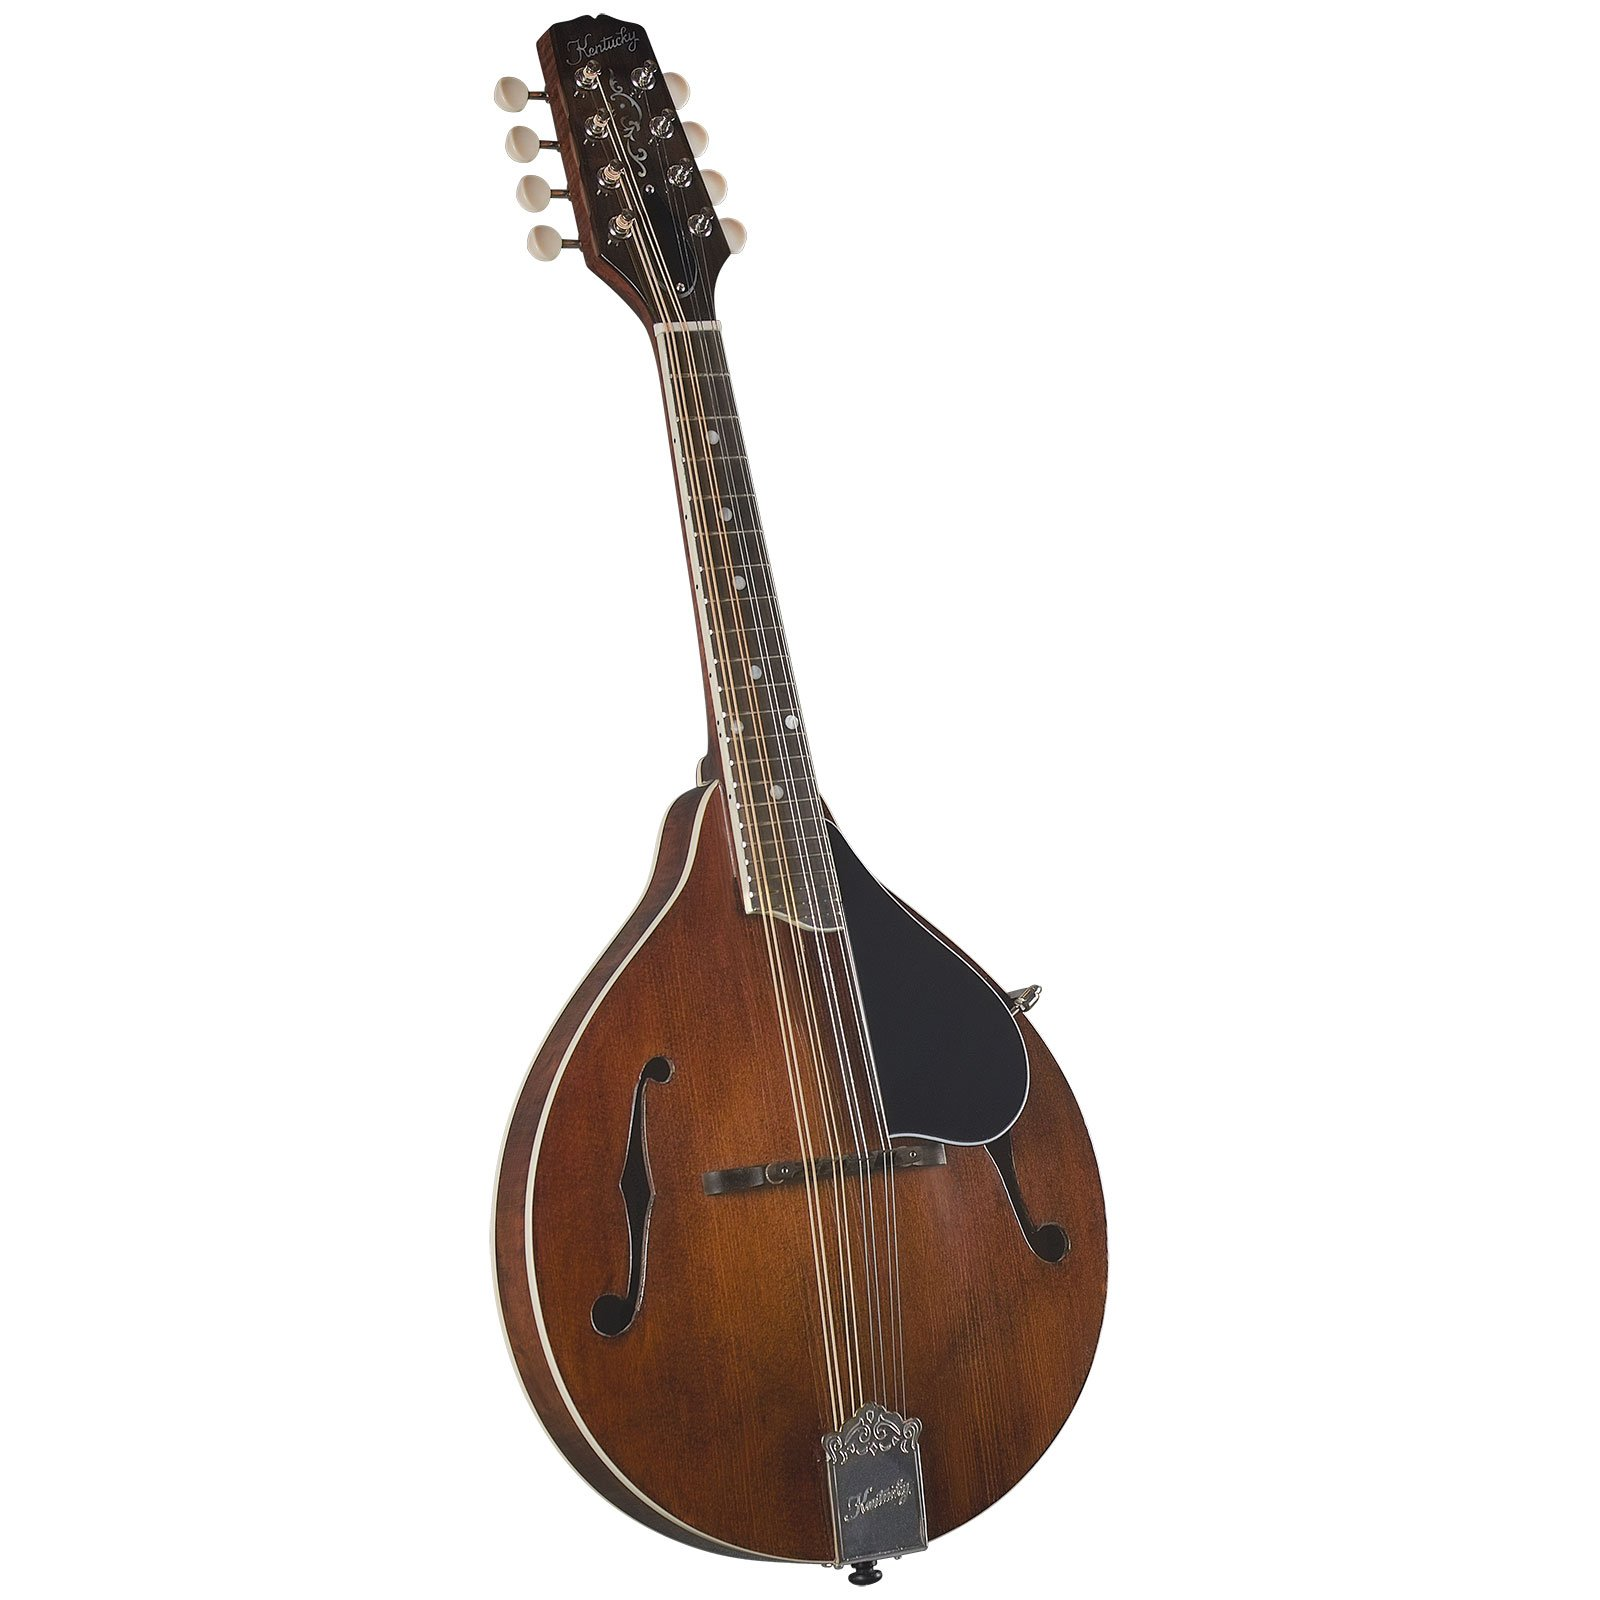 Kentucky KM-256 Artist A-model Mandolin - Transparent Brown